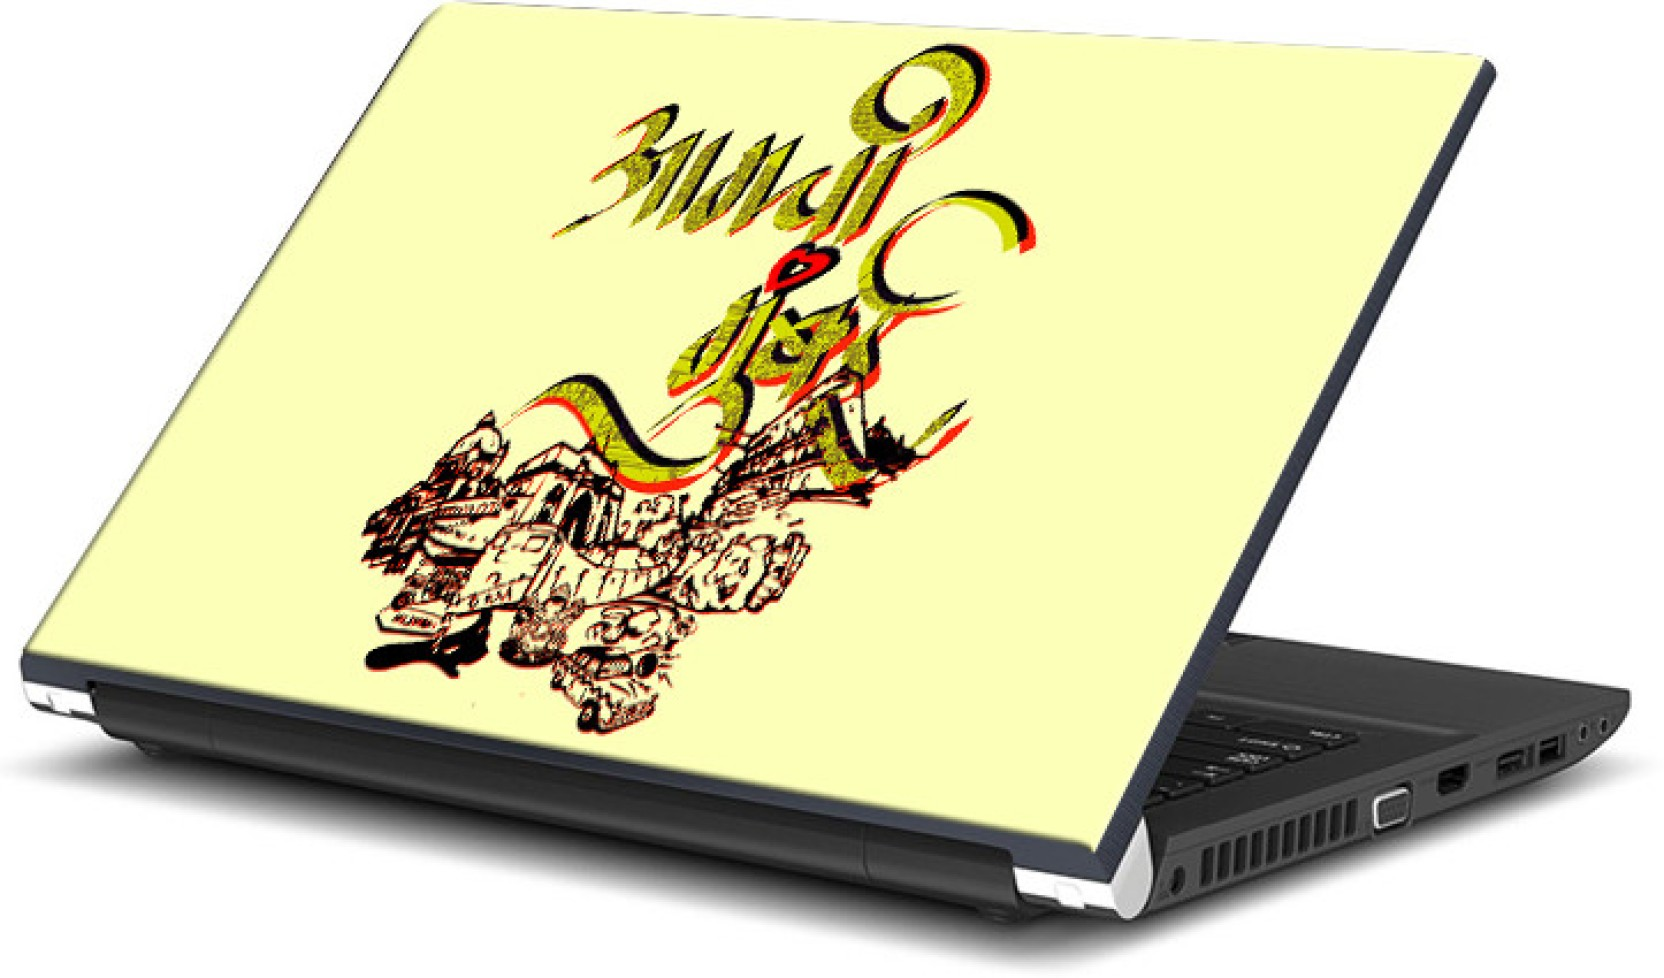 Mumbai vinyl laptop decal 15 6 share